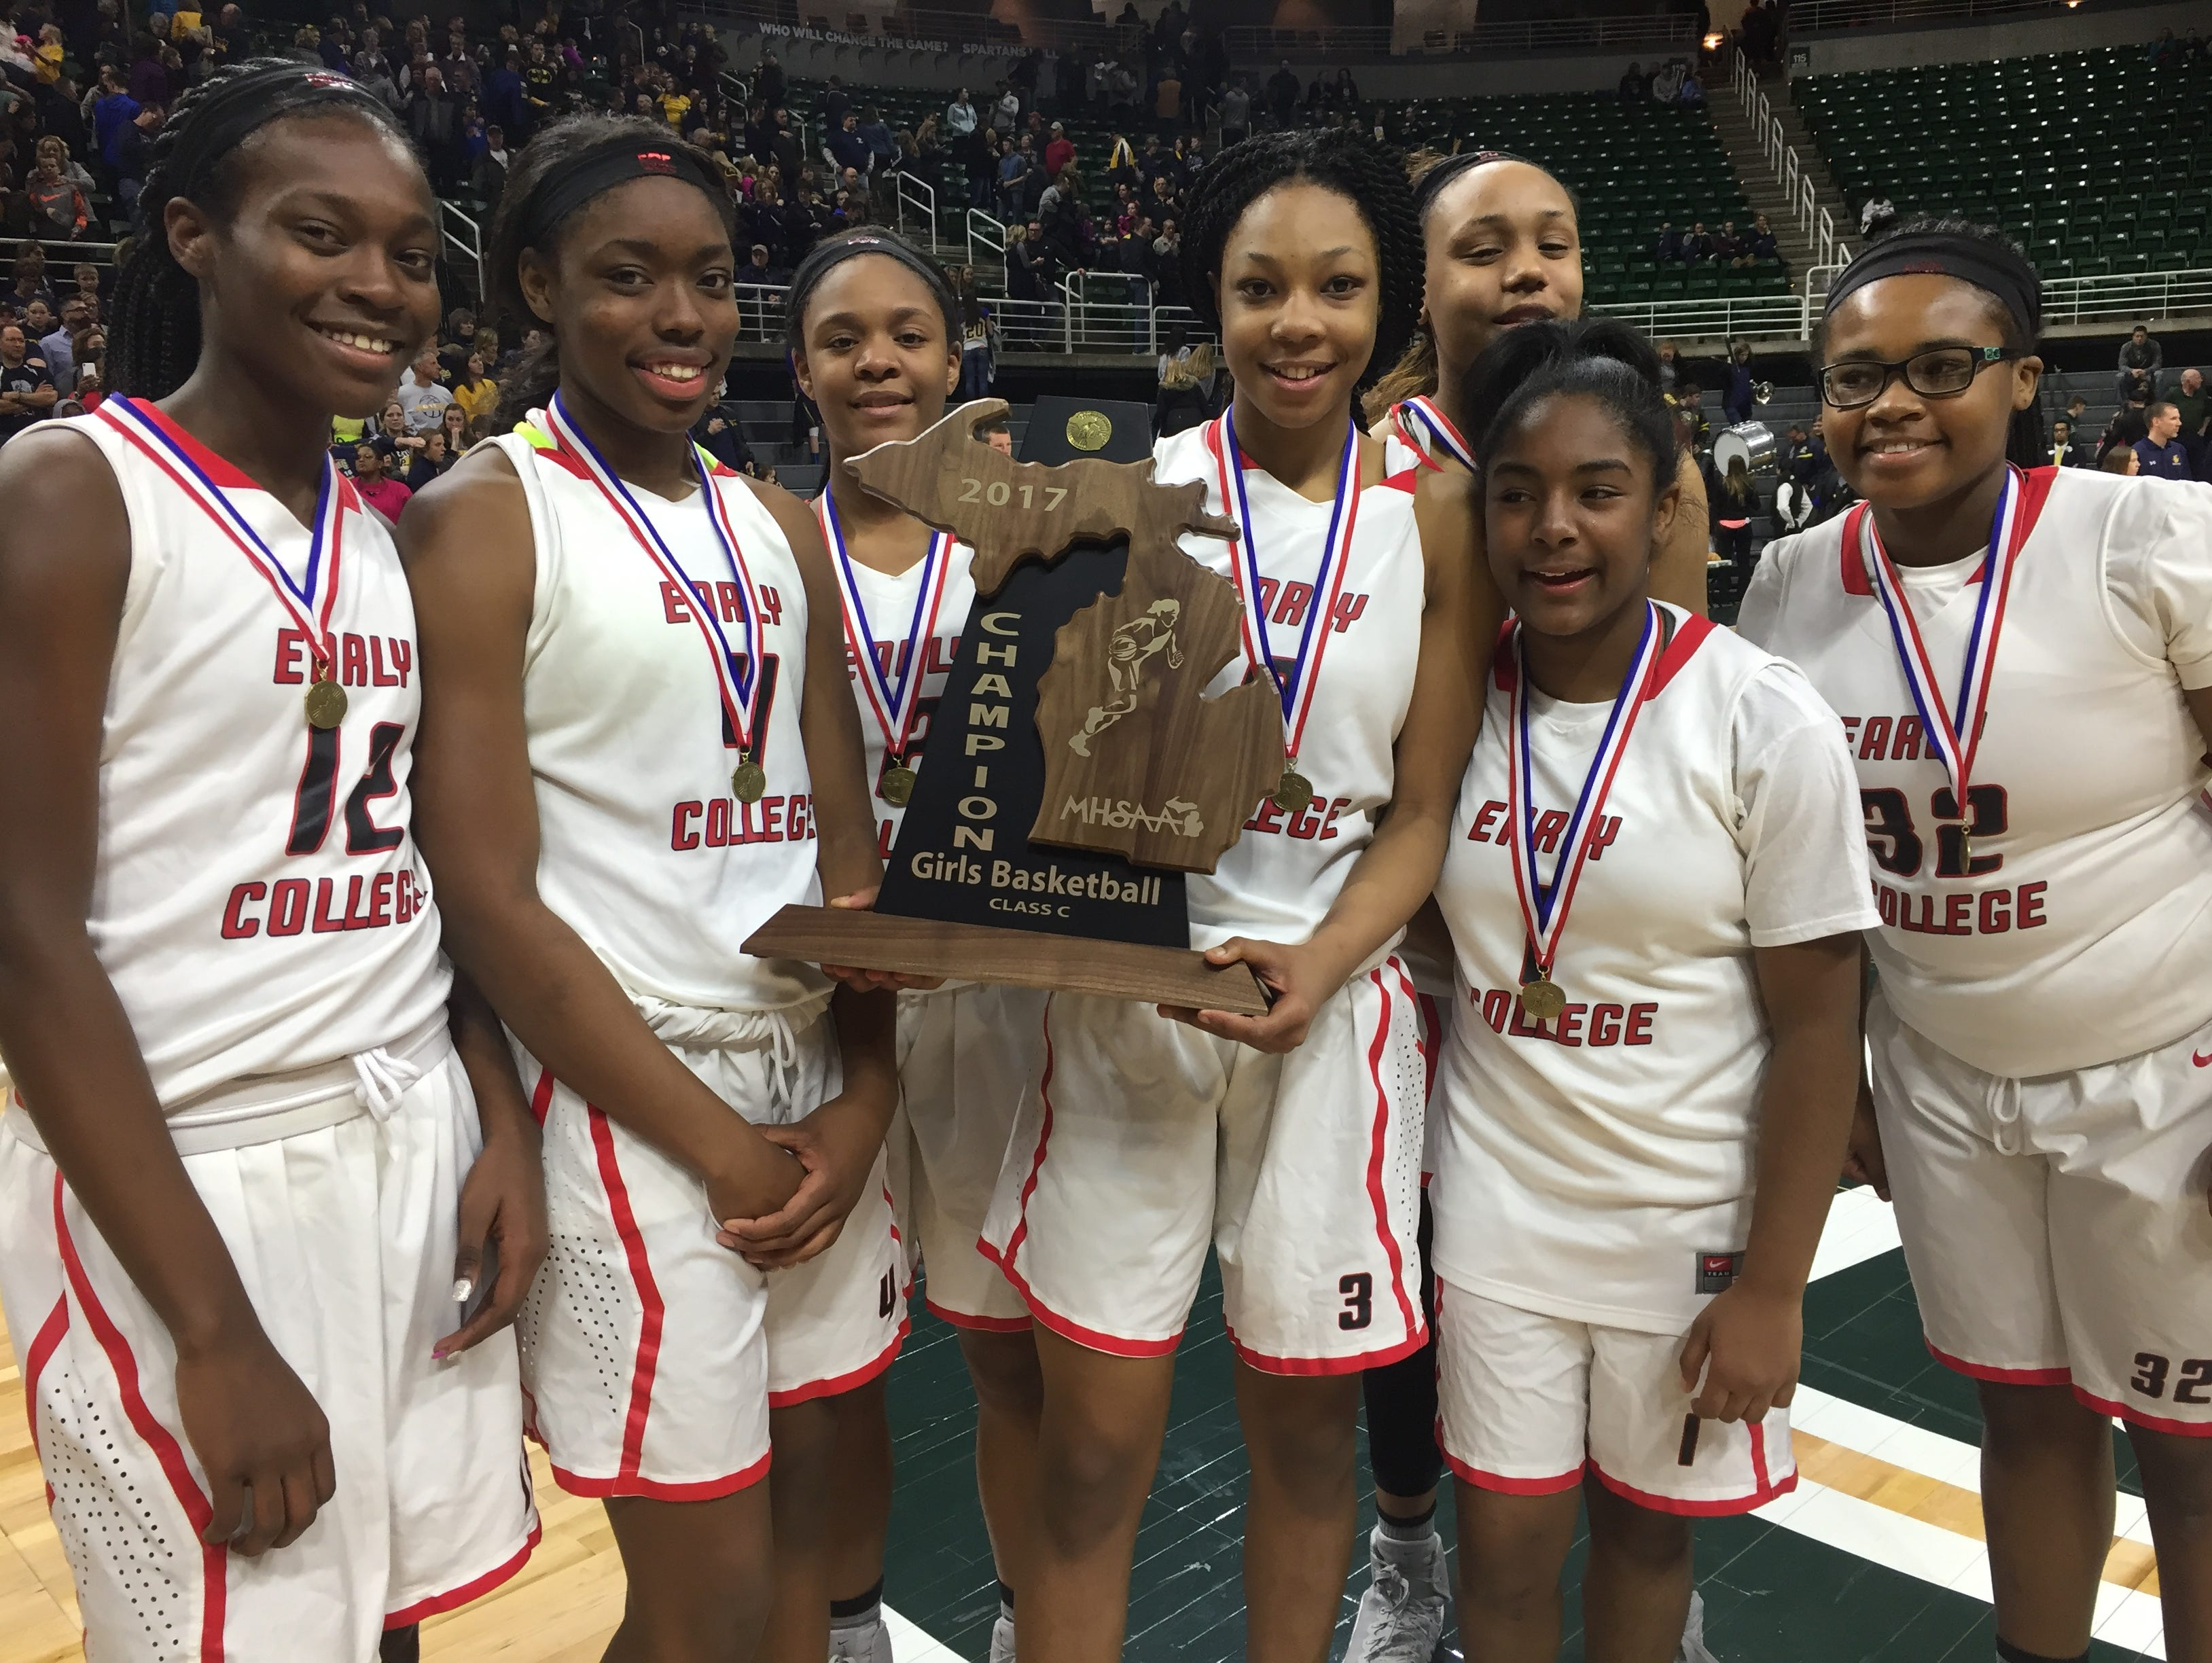 Detroit Edison freshman Gabrielle Elliott, joined by teammates, holds the Class C girls basketball state trophy after her team's 46-44 win over Pewamo-Westphalia at the Breslin Center on Saturday, March 18.